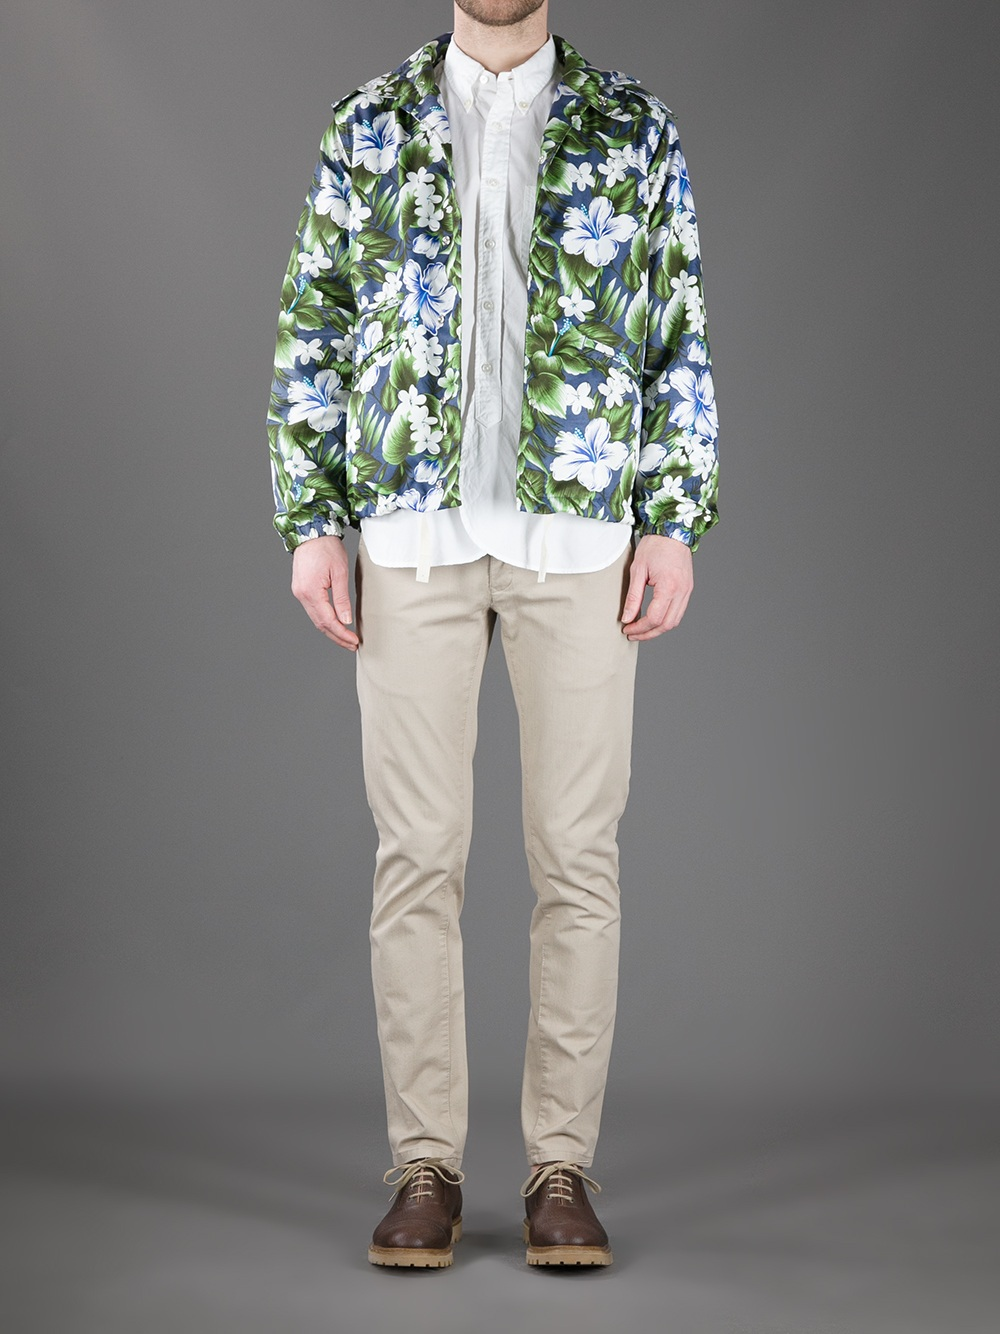 Engineered Garments Floral Print Jacket in Military Green (Green) for Men